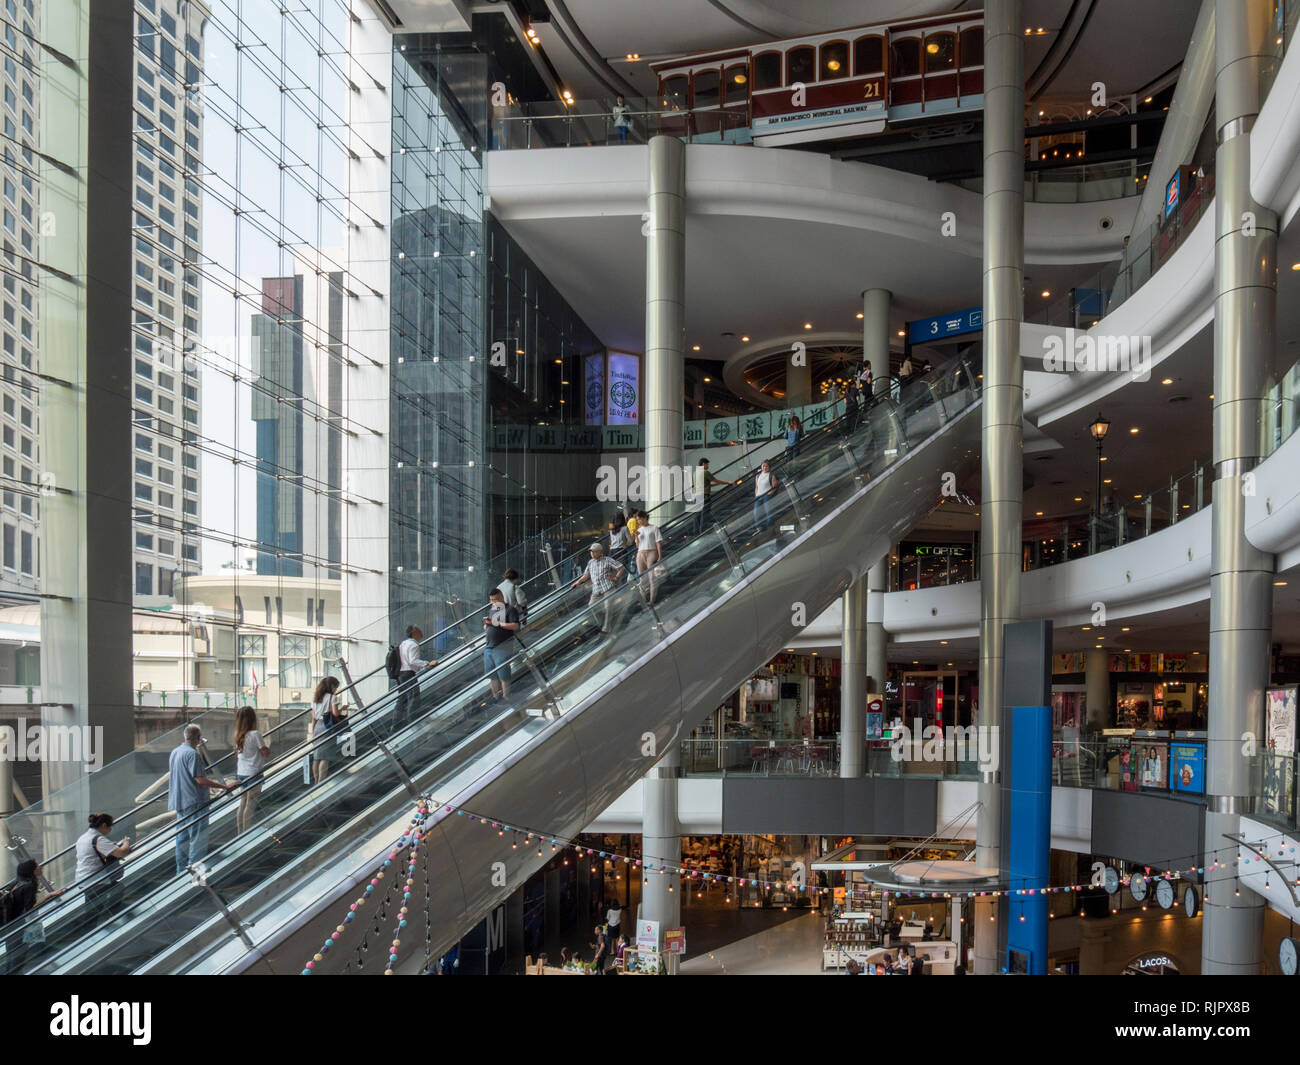 The interior of a modern shopping precinct in Bangkok Thailand with escalators and people shopping - Stock Image